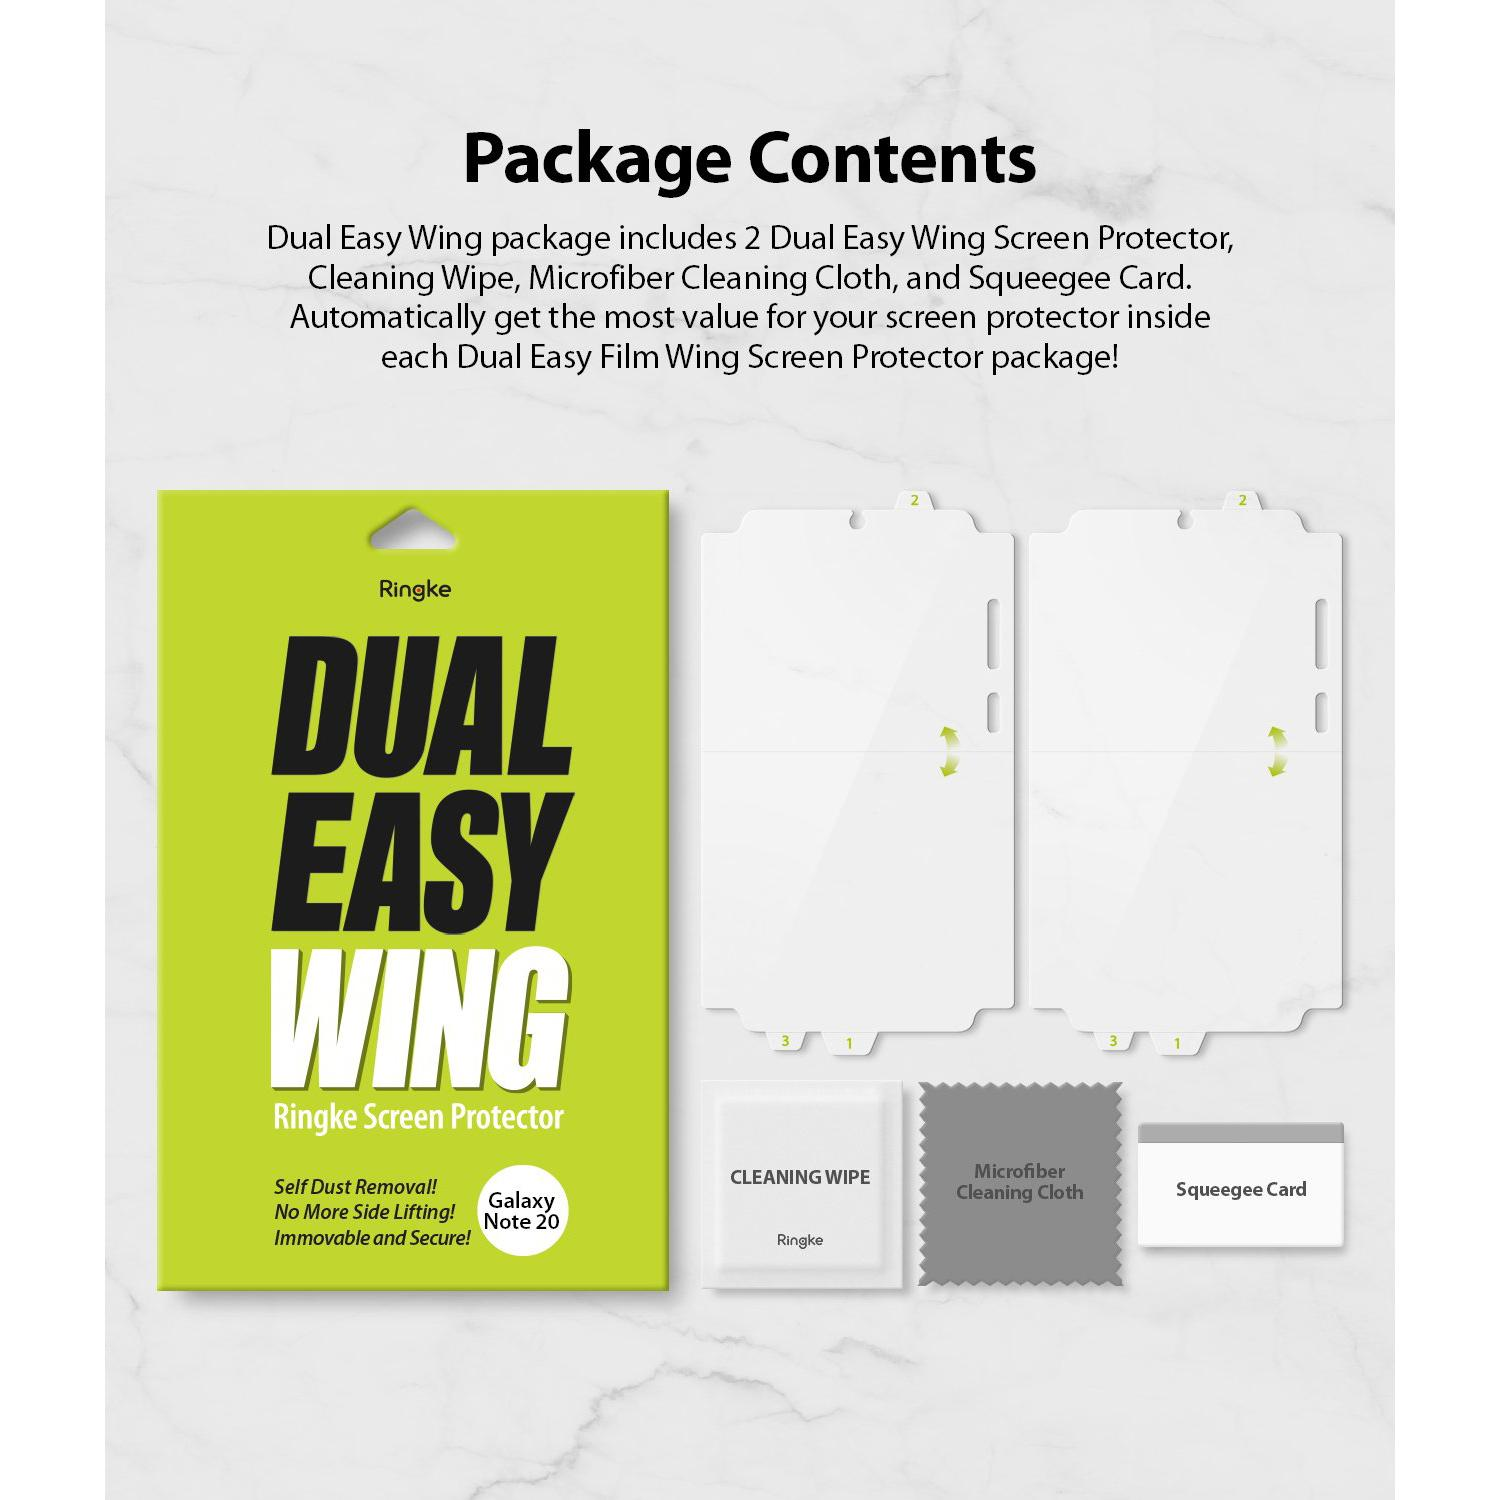 Dual Easy Wing Screen Protector Galaxy Note 20 (2-pack)